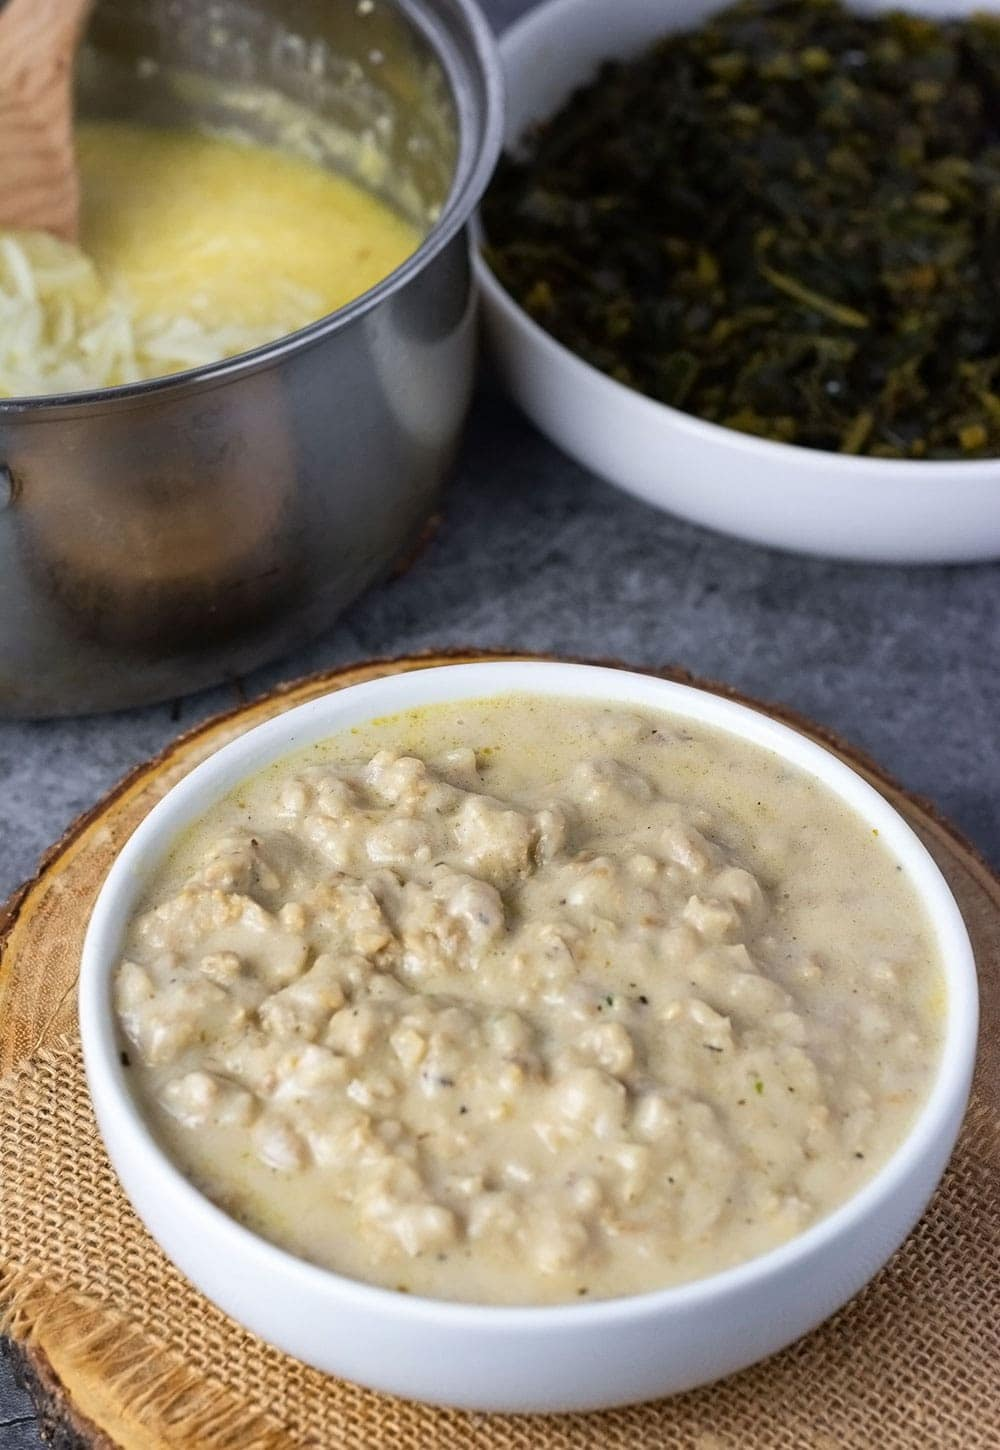 Overlay of vegan sausage gravy in a white bowl on w wooden background, white bowl with collard greens and a pot of grits